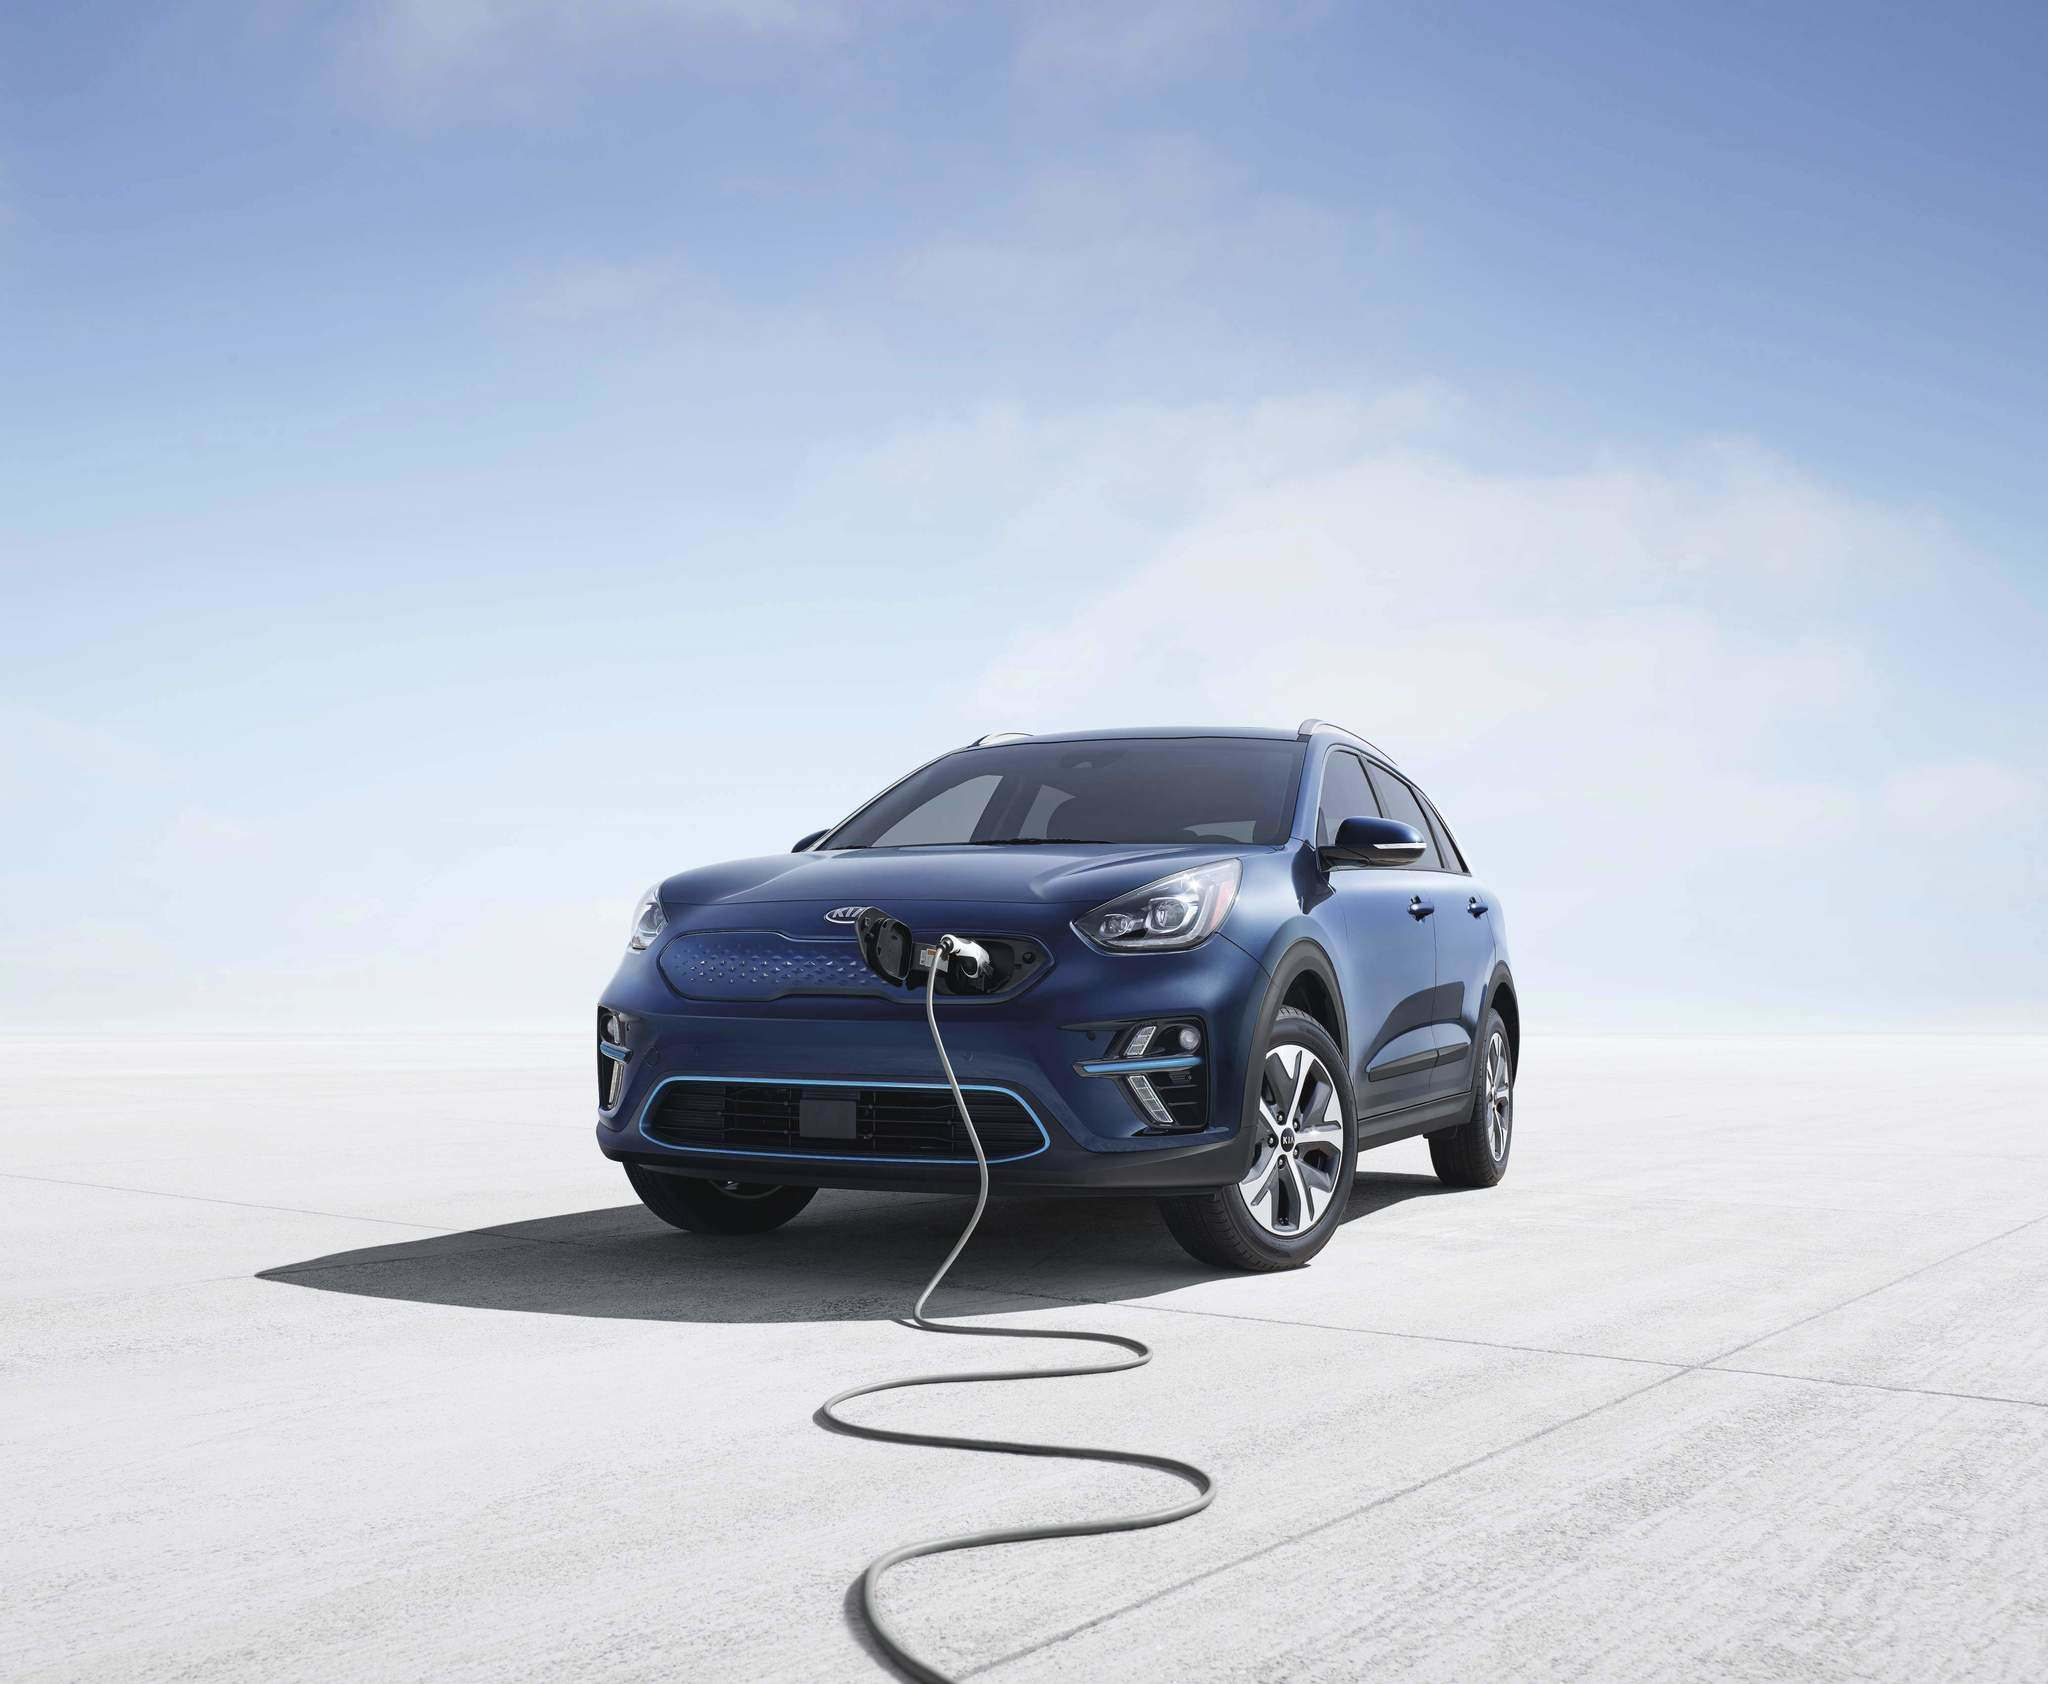 Kia The 2019 Kia Niro EV is expected to have a range of 384 kilometres.